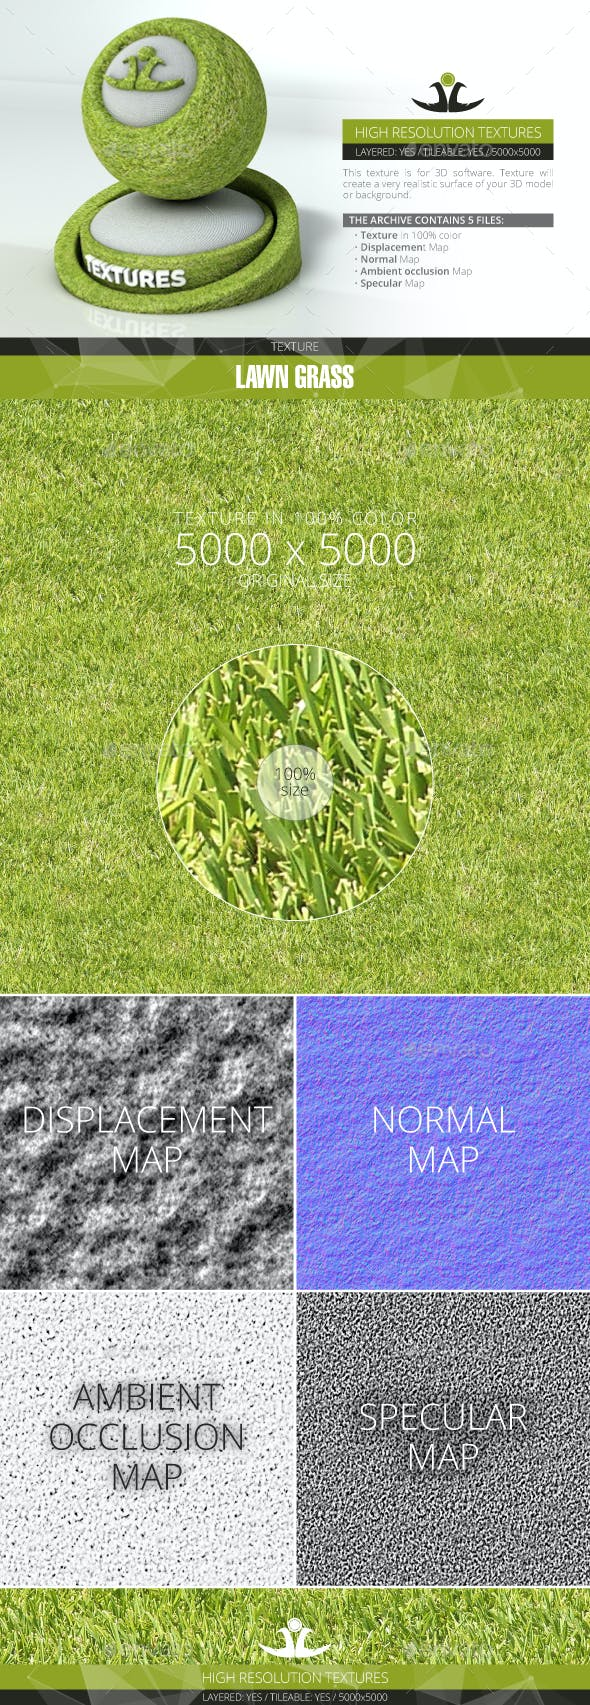 Lawn Grass 9 - 3DOcean Item for Sale